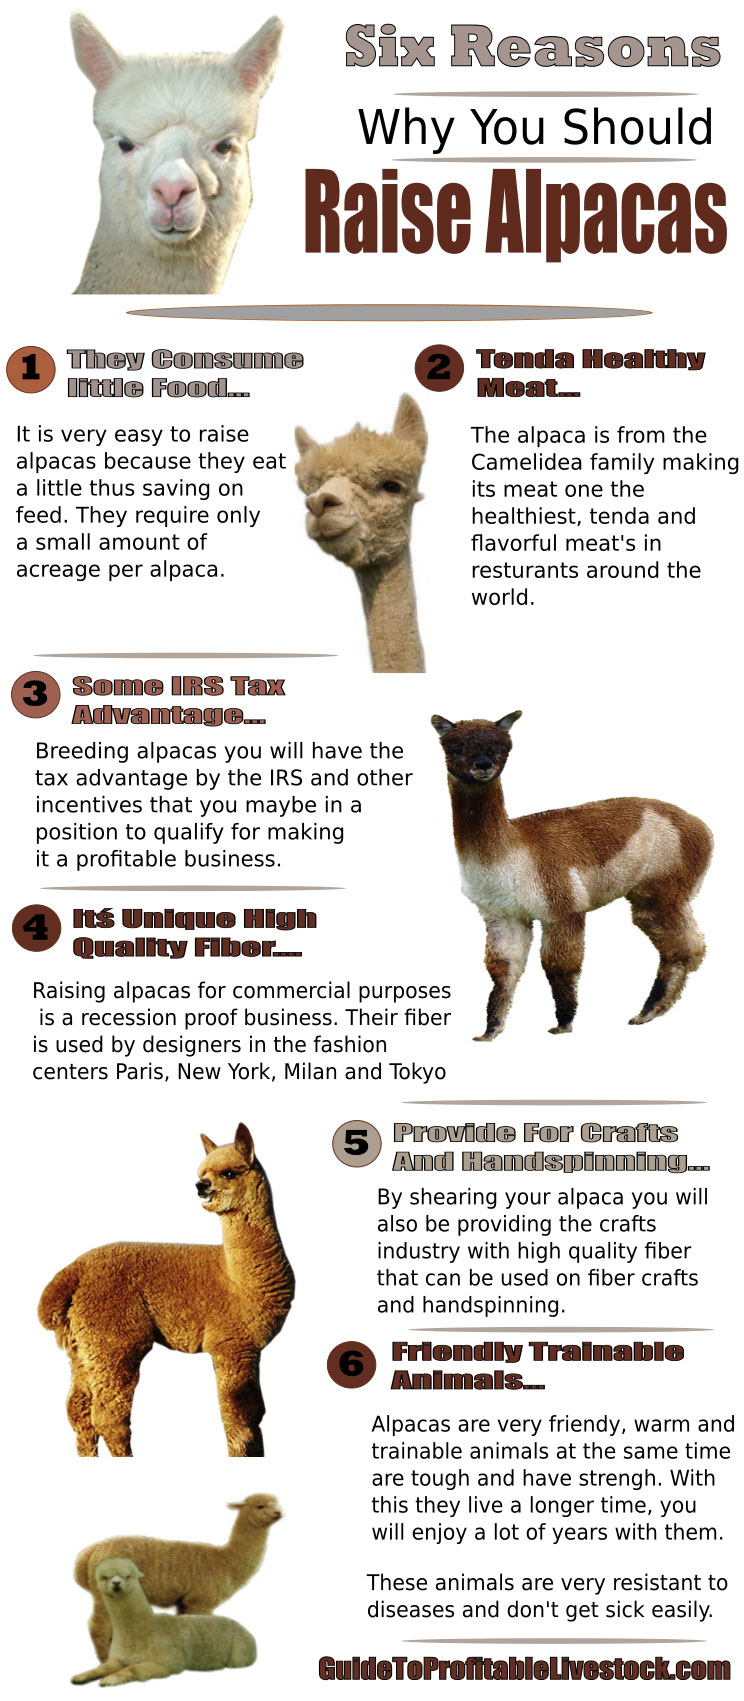 Reasons To Raise Alpacas